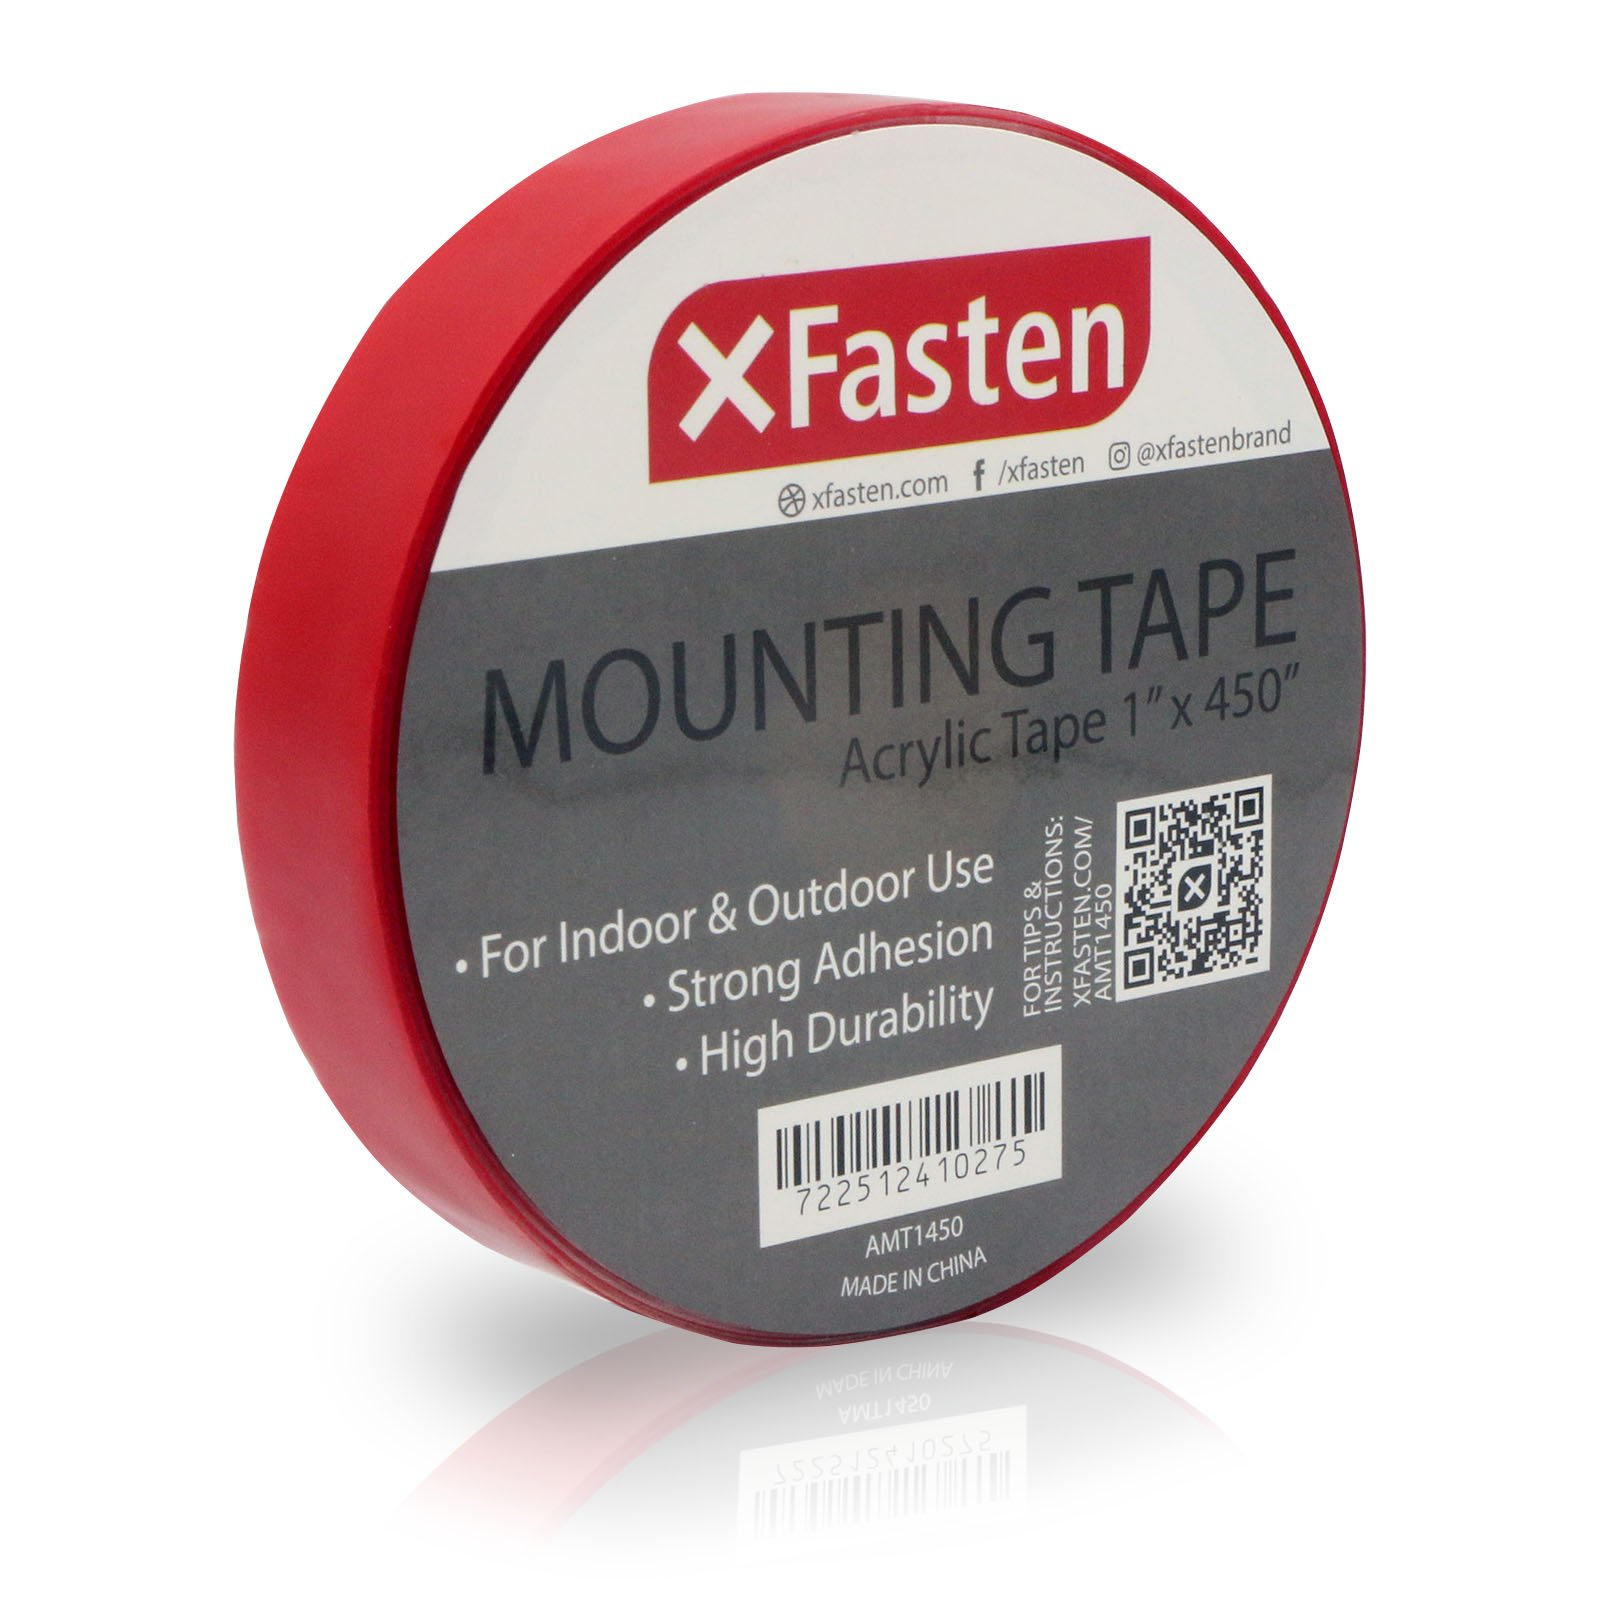 XFasten Acrylic Mounting Tape Removable, 1-Inch x 450-Inch